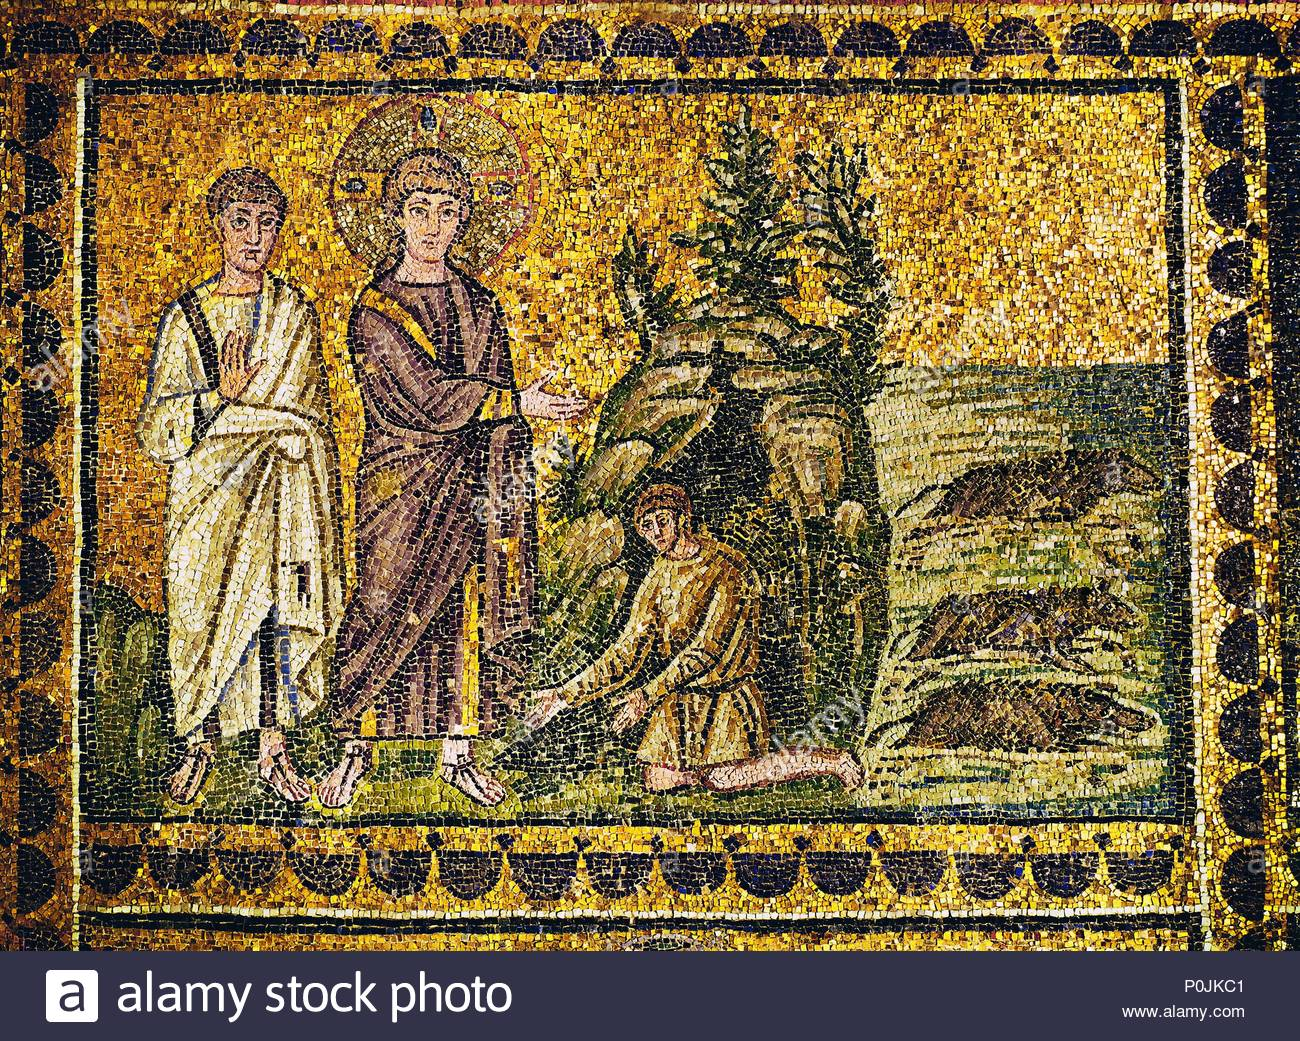 The Gadarene swine or the exorcism of two demons, (Mark 5: 1-10). Jesus and an apostle. Mosaic (6th). Location: Sant'Apollinare Nuovo, Ravenna, Italy. - Stock Image